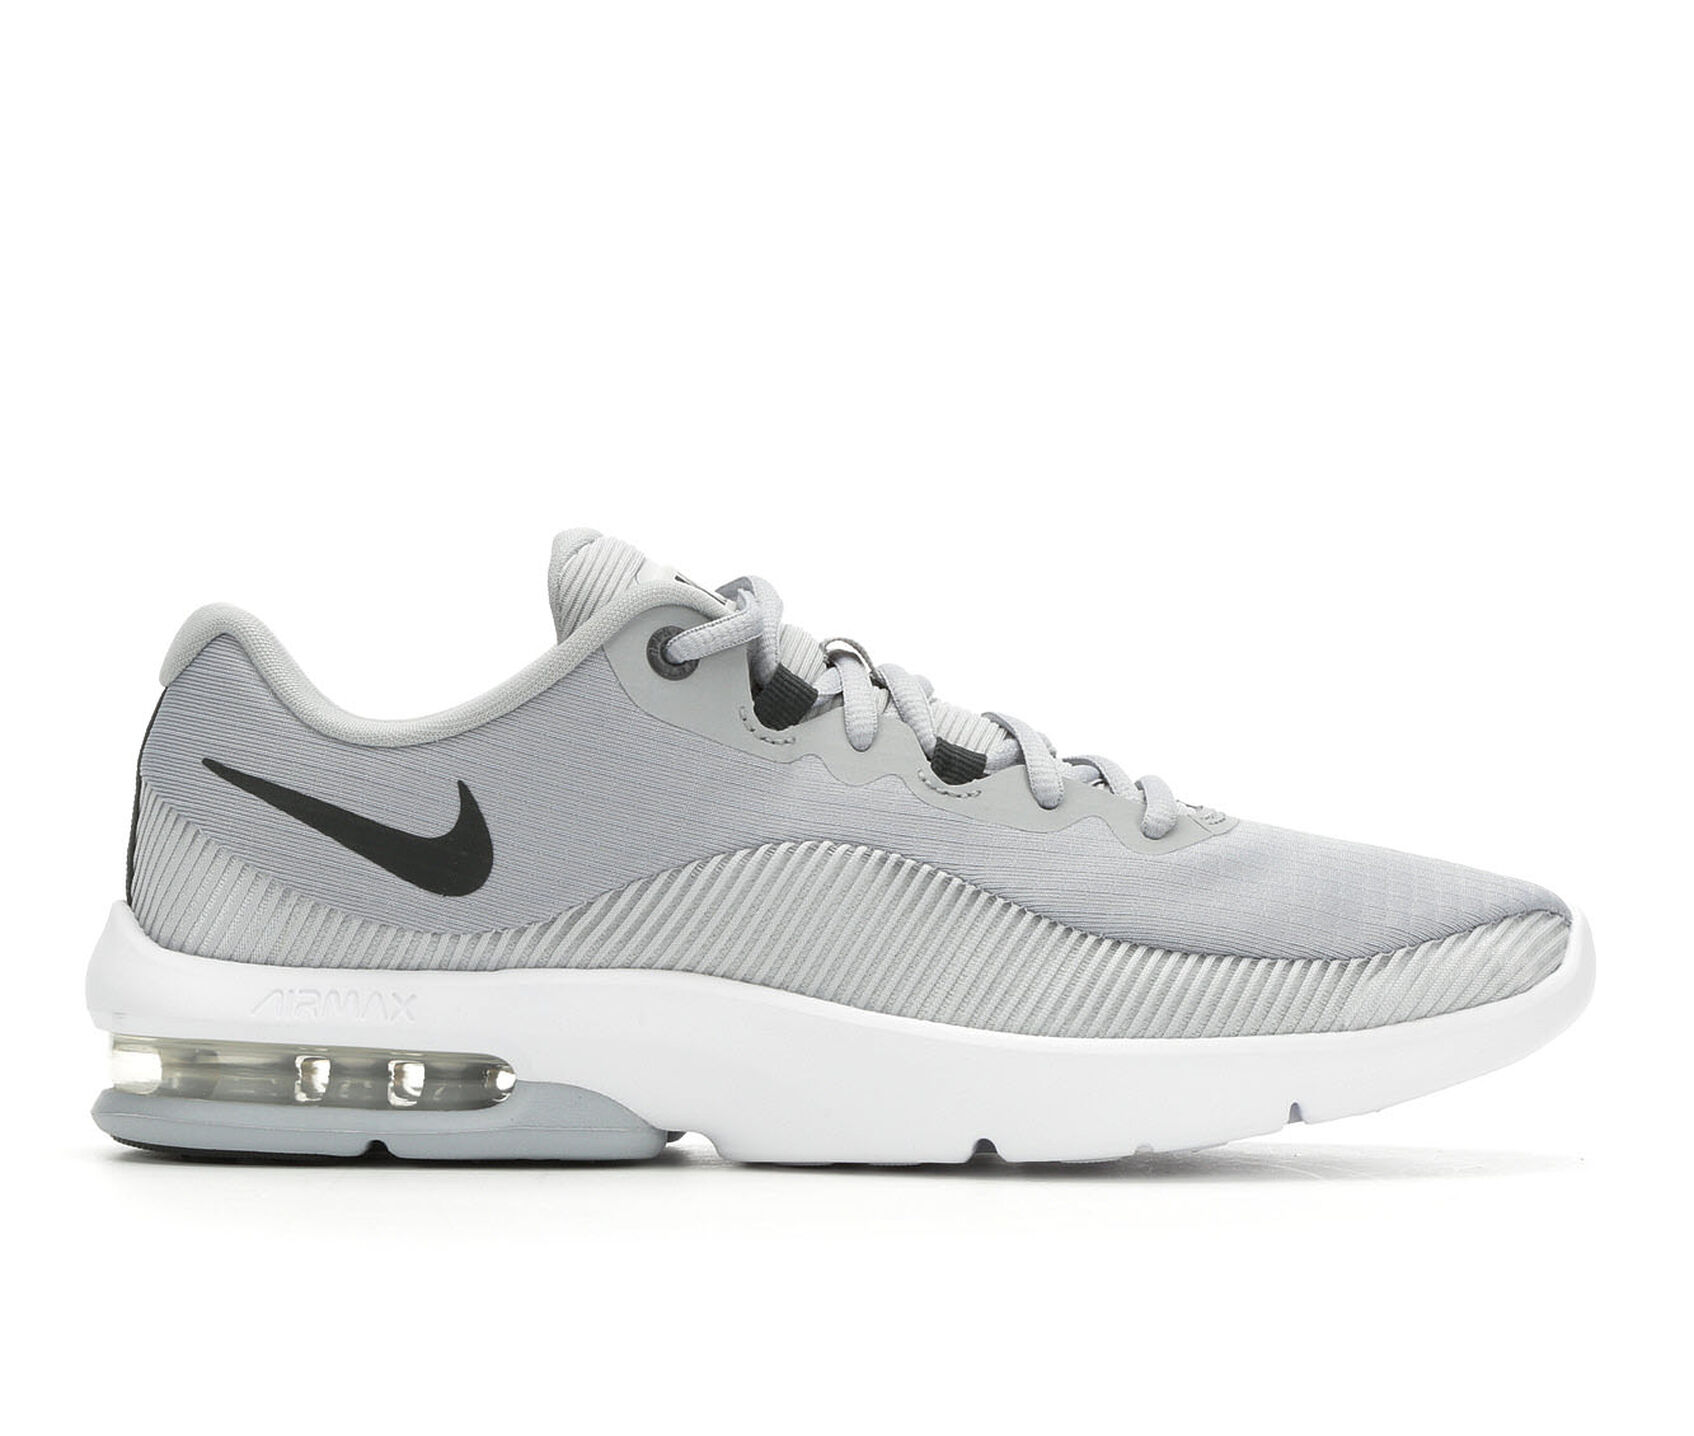 b068f9c1f9 Men's Nike Air Max Advantage 2 Running Shoes | Shoe Carnival